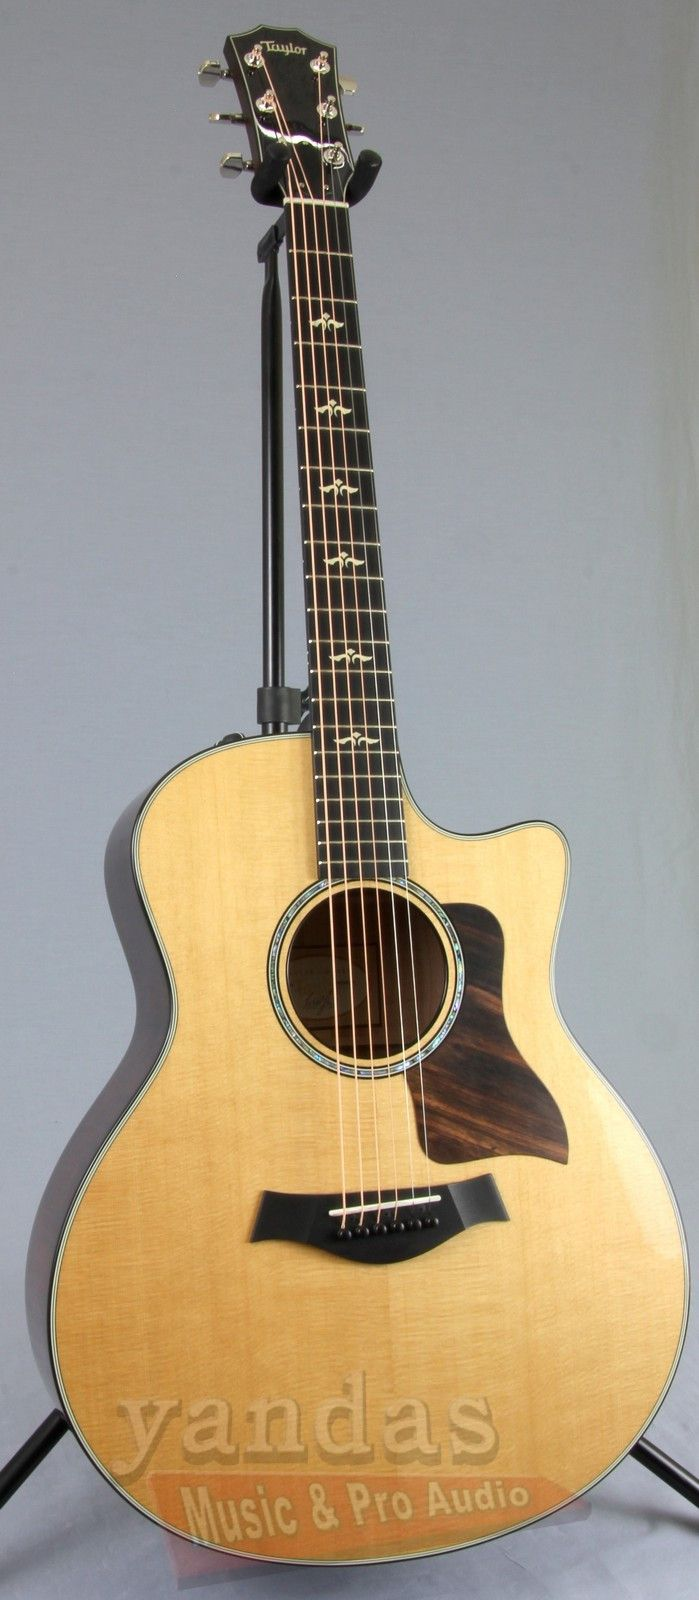 Acoustic guitar - Wikipedia